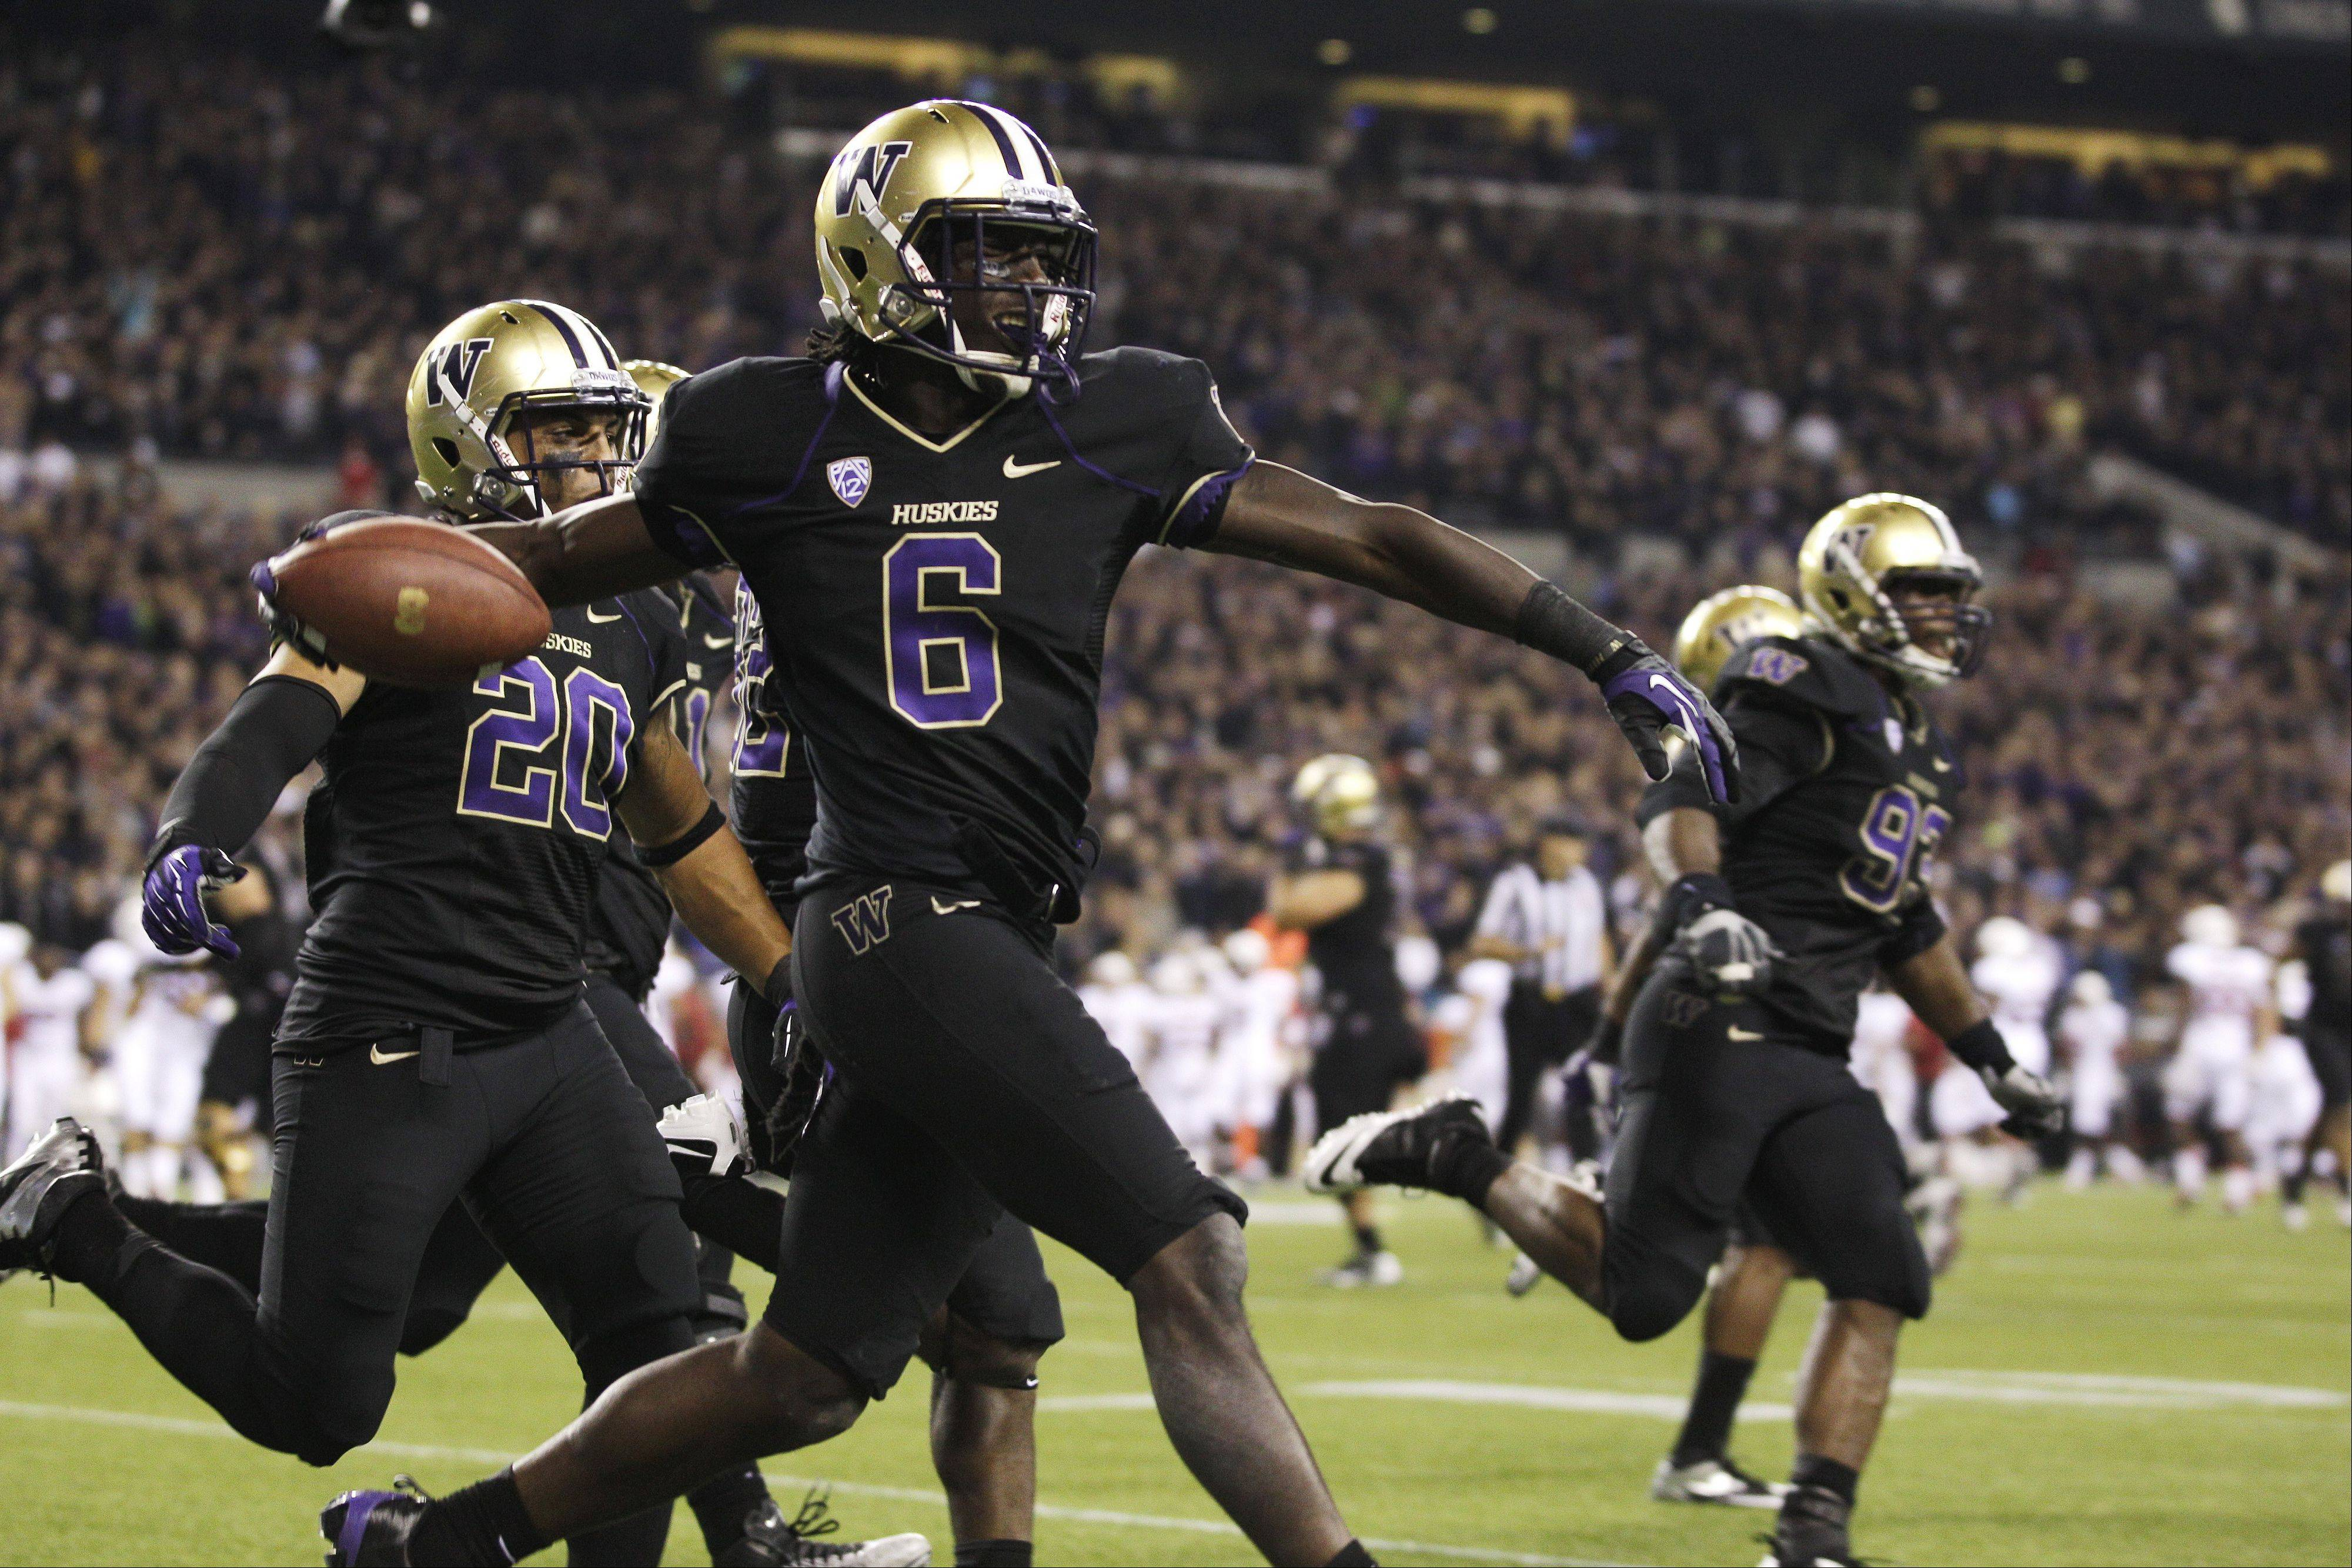 Washington's Desmond Trufant celebrates his interception against Stanford late in the second half Thursday in Seattle.